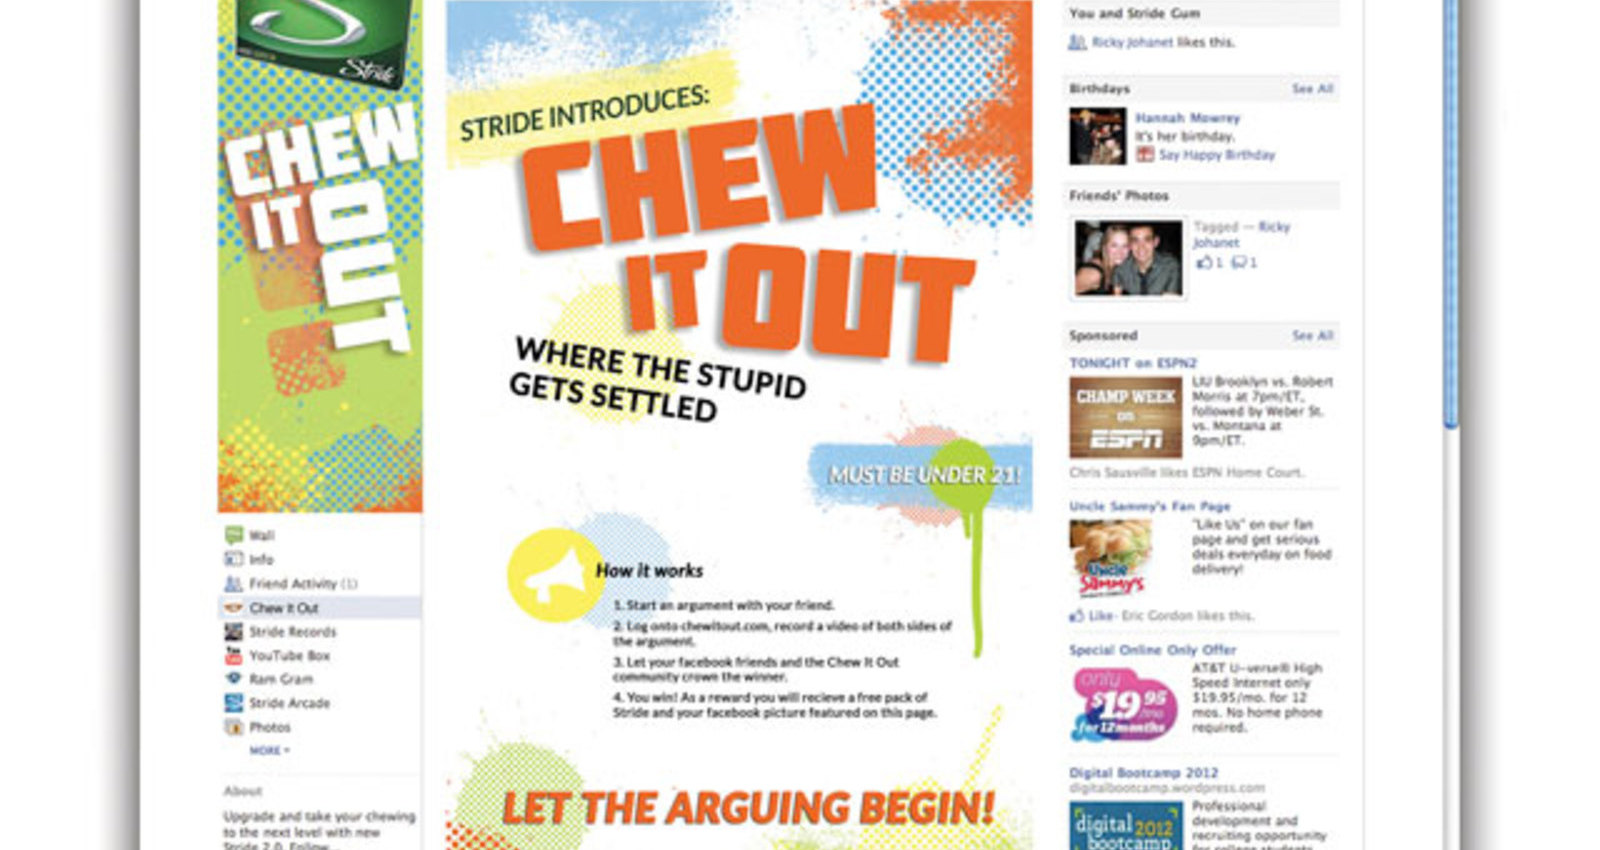 Chew It Out